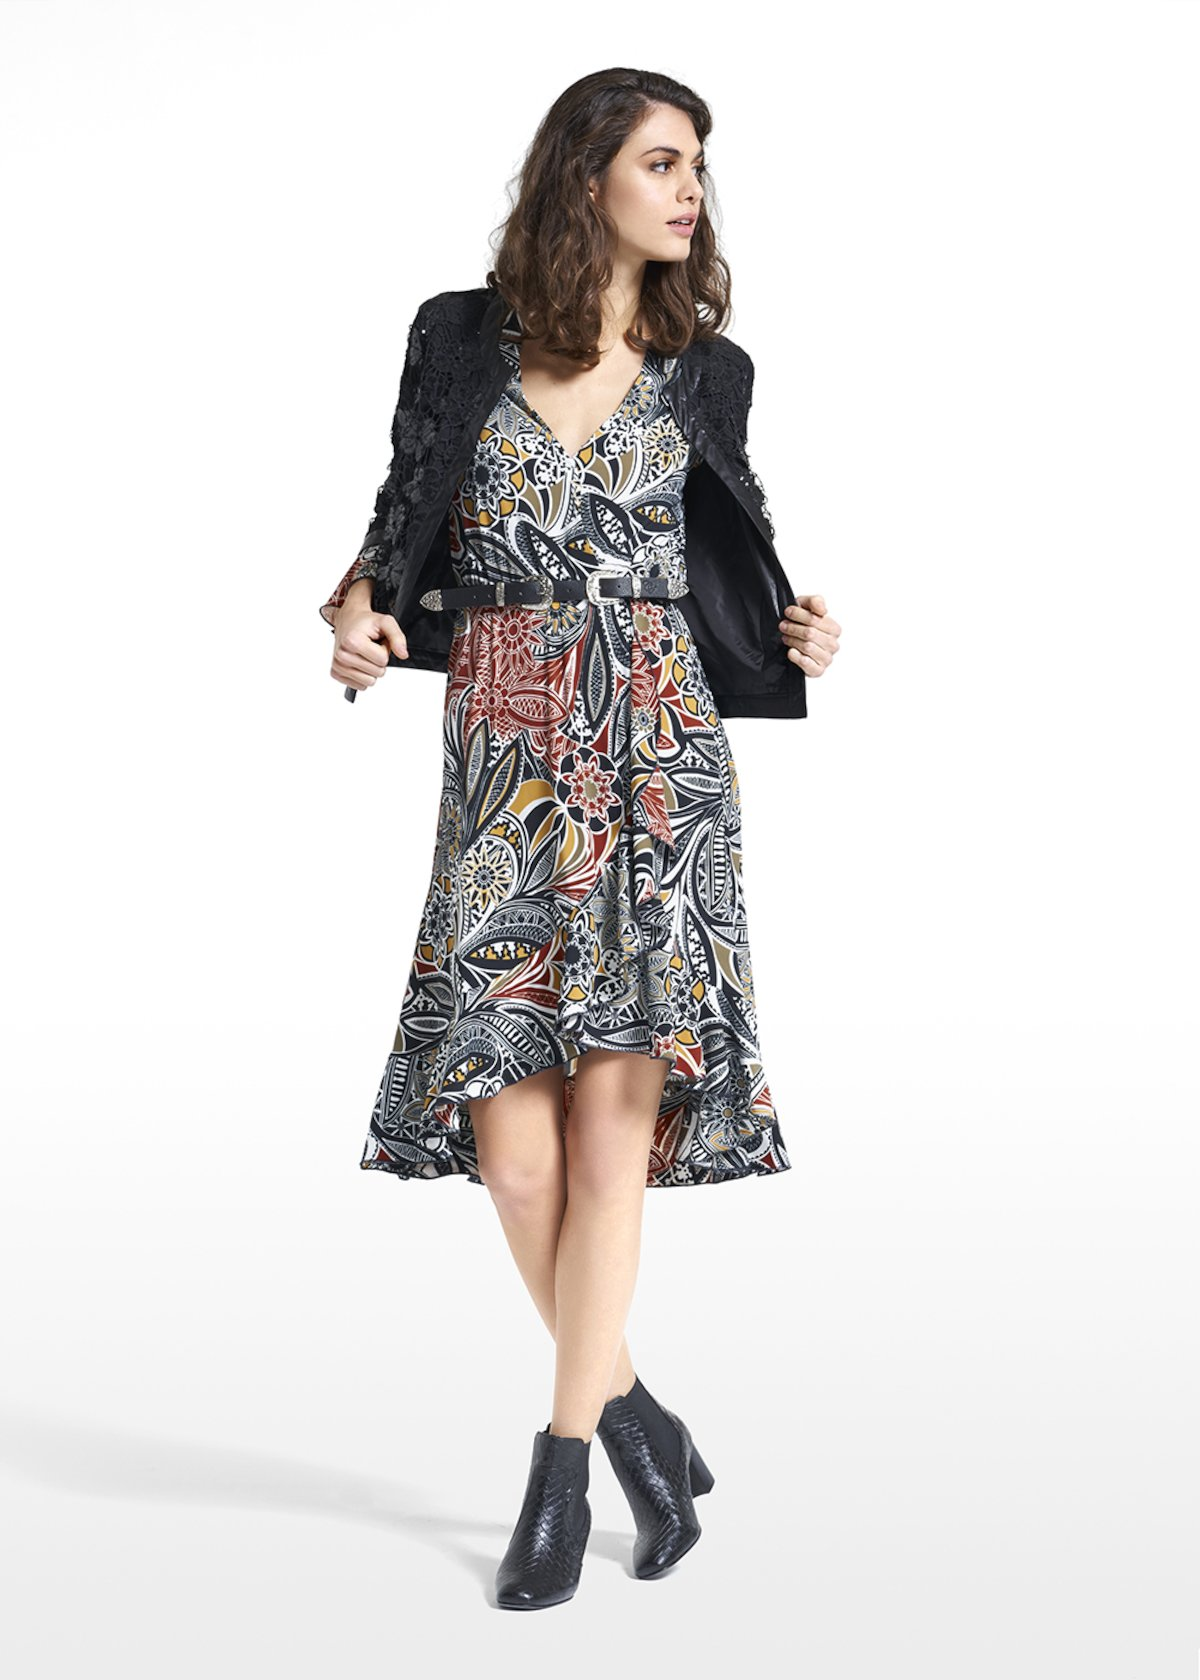 Shrug Climber in georgette and sequins with faux leather hems - Black - Woman - Category image